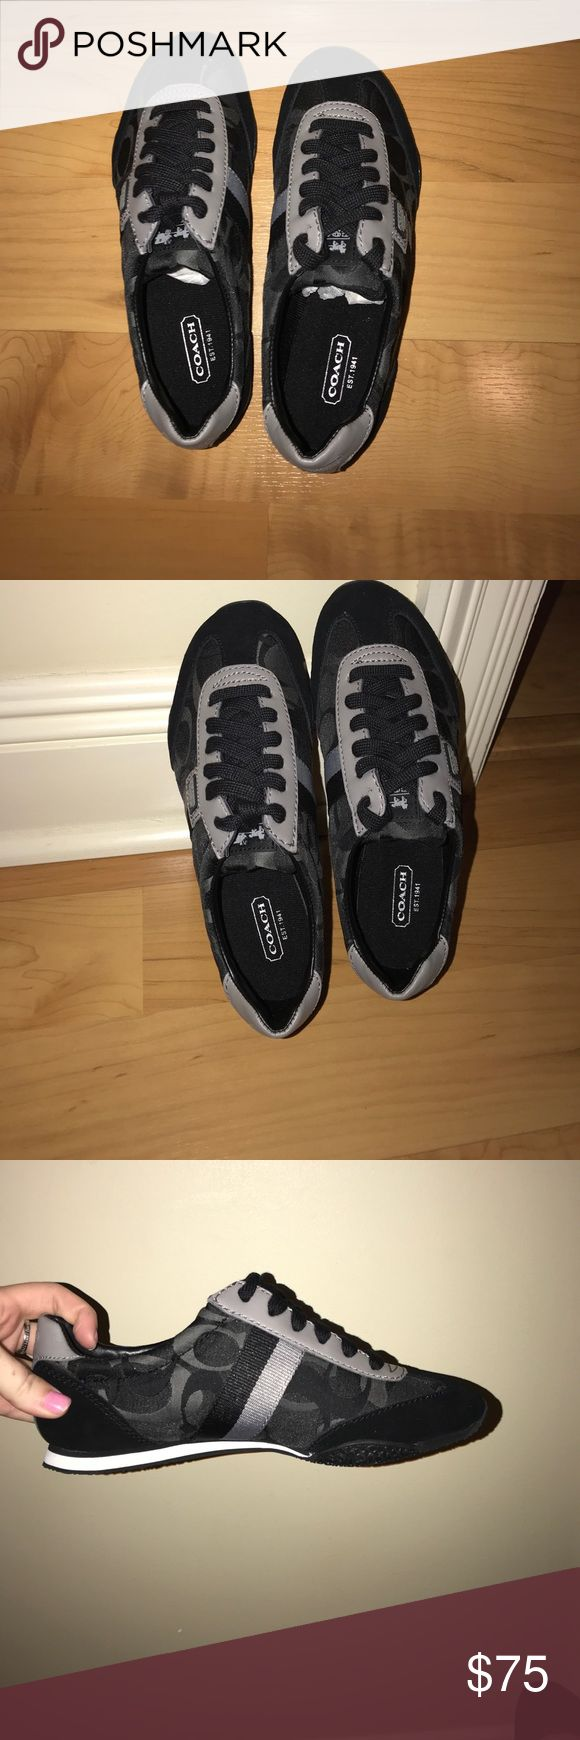 Coach tennis shoes Black and Grey Coach Running shoes!! NEVER WORN!!! Still in box and ready to be worn!! ❤️ Coach Shoes Sneakers